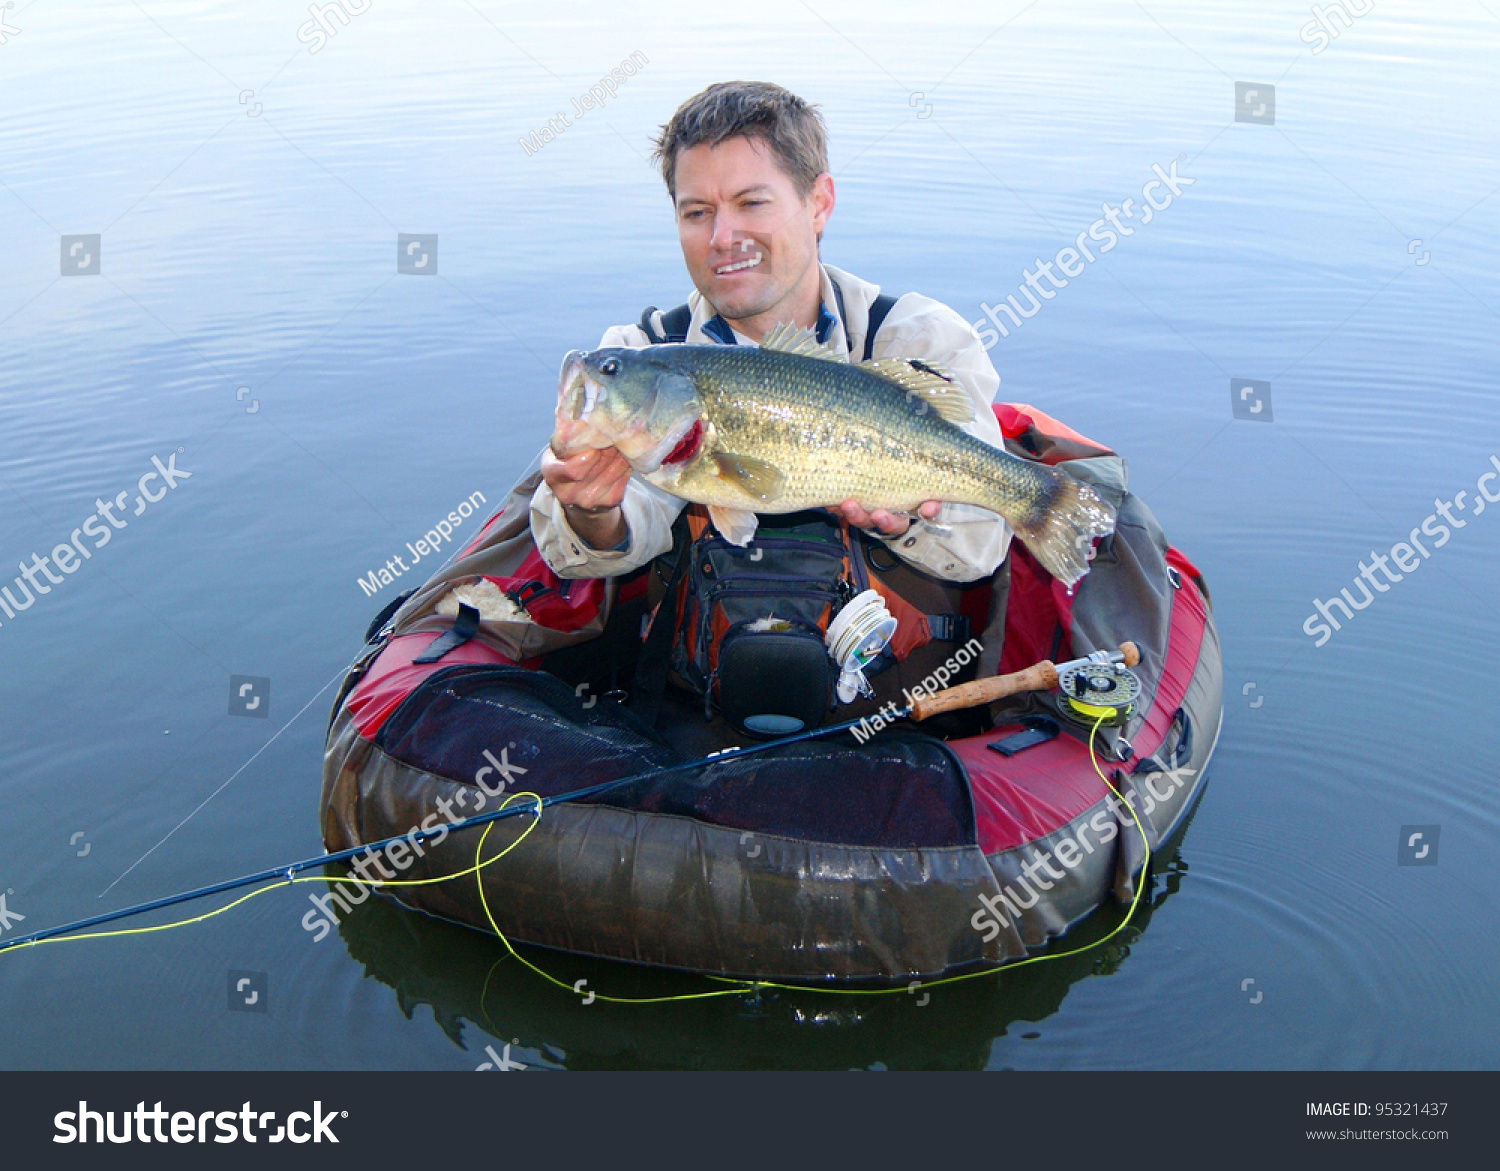 Fly fisherman pontoon float tube belly stock photo for Float tubes for fishing